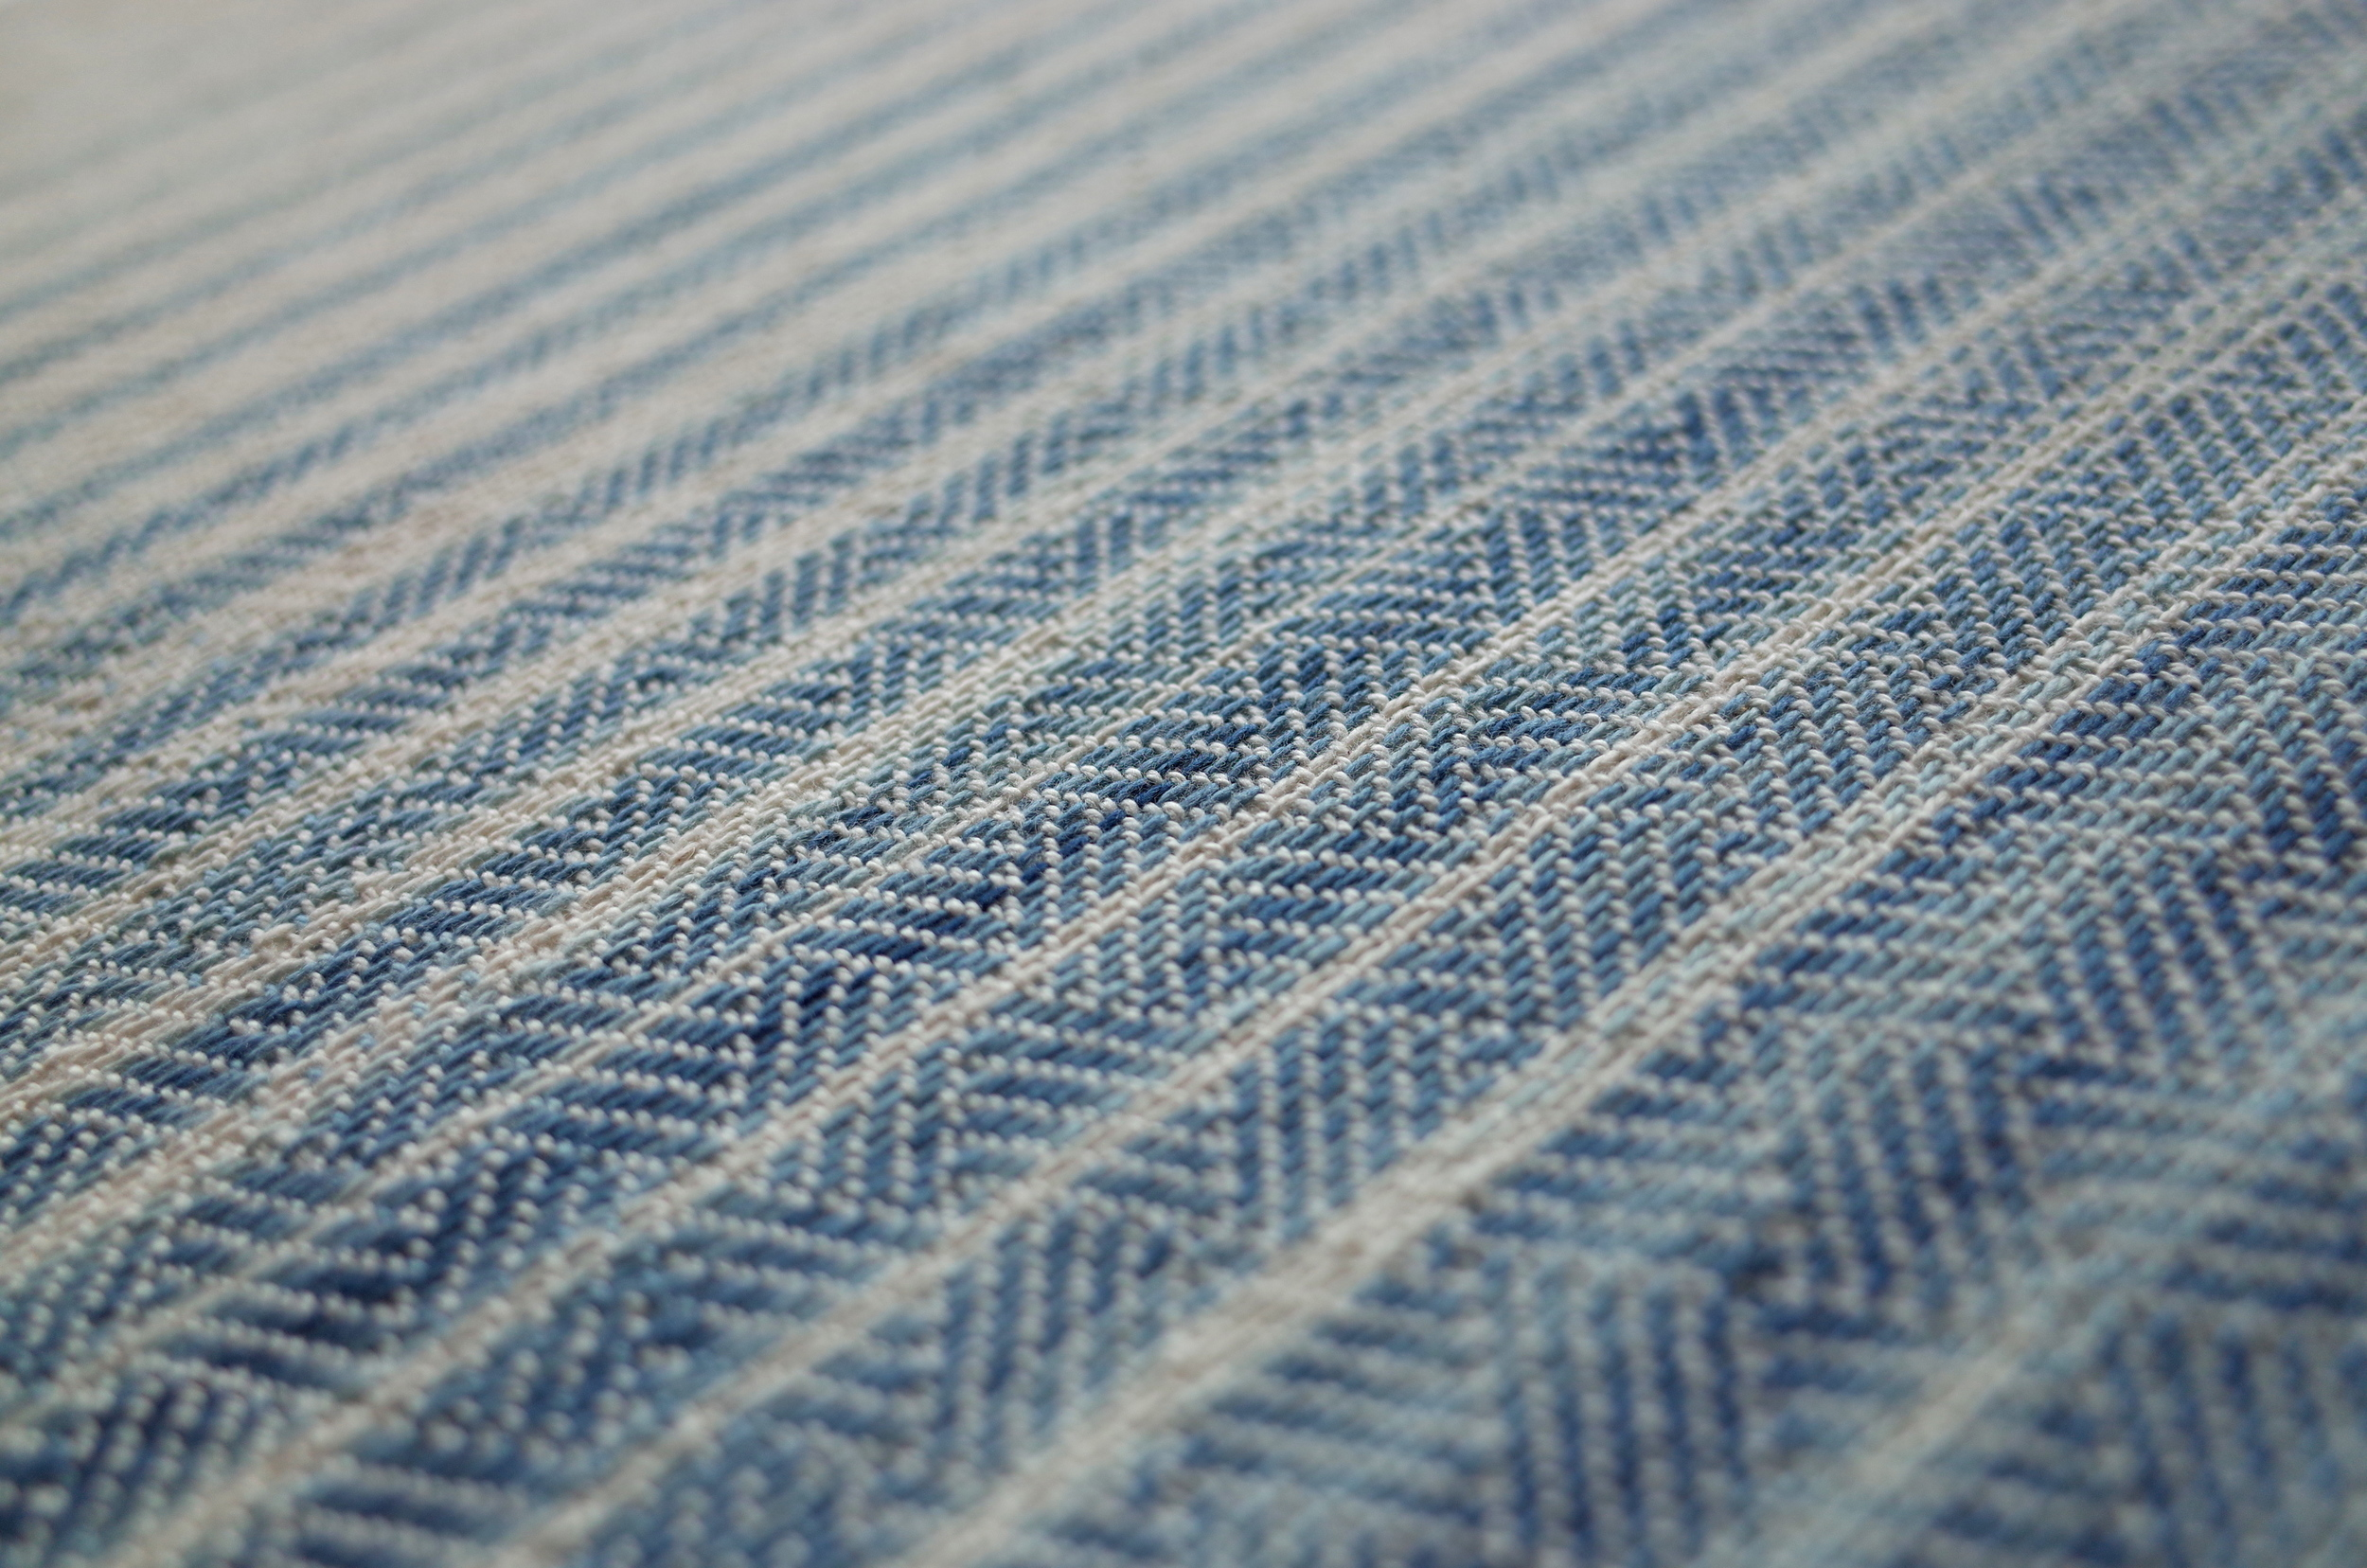 Finished weaving detail.